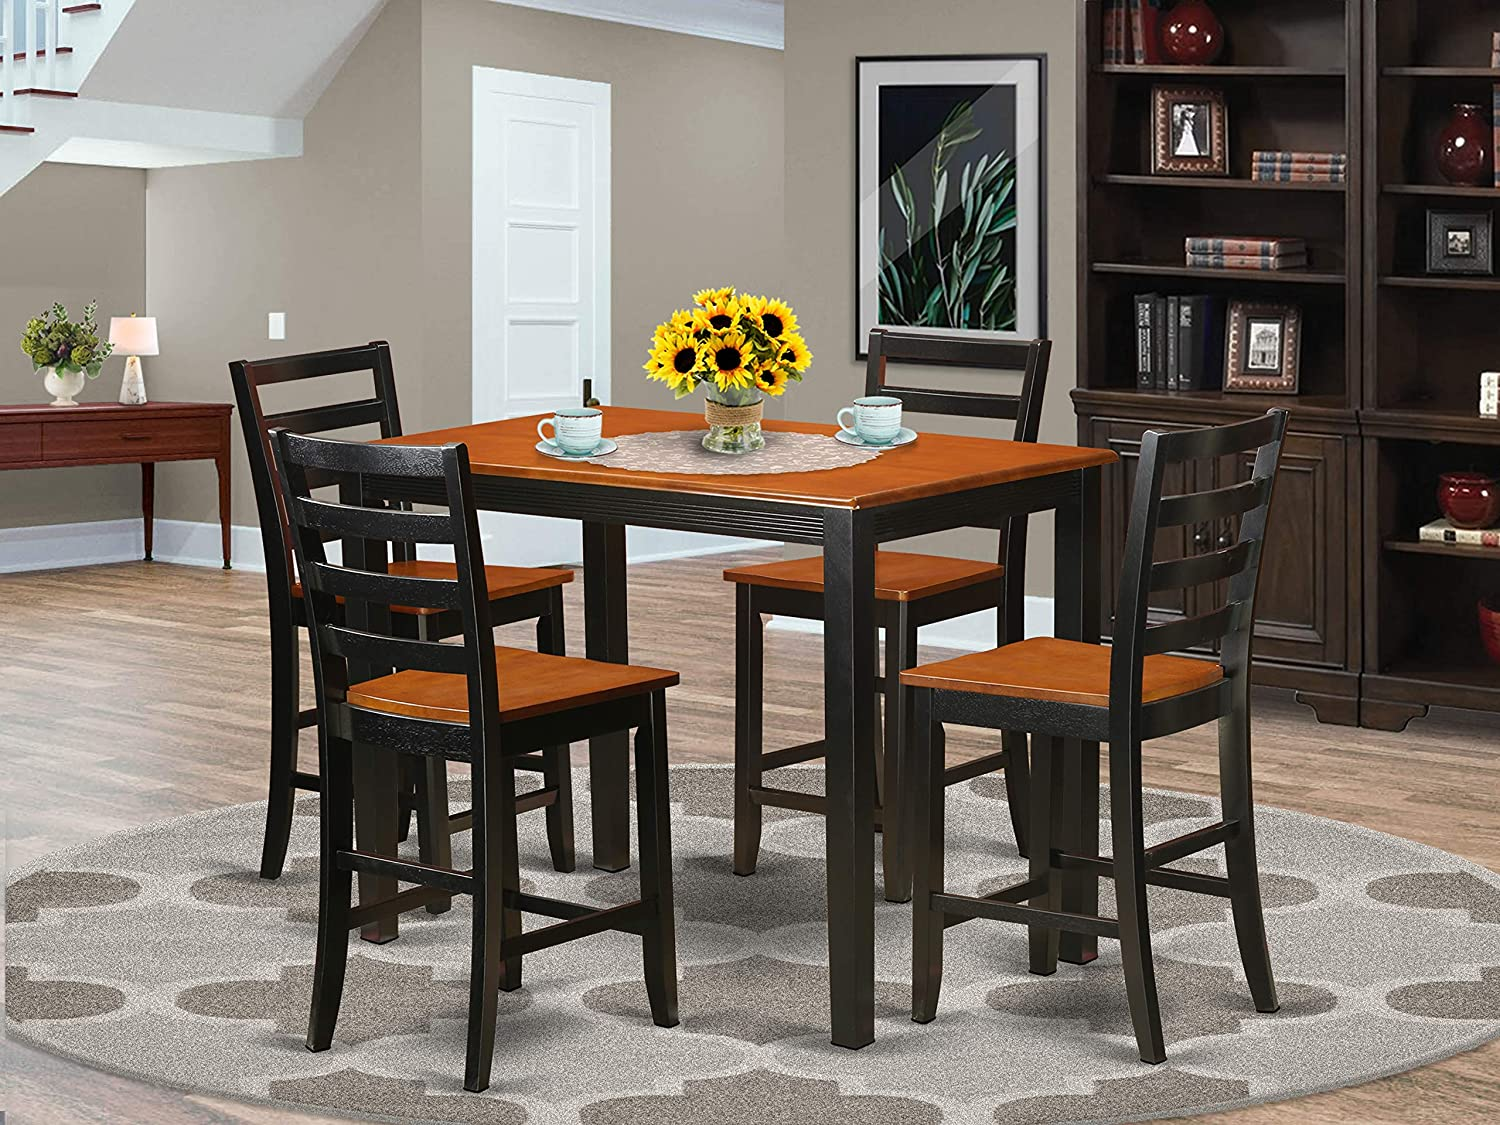 Amazon Com 5 Pc Counter Height Pub Set Small Kitchen Table And 4 Bar Stool Furniture Decor